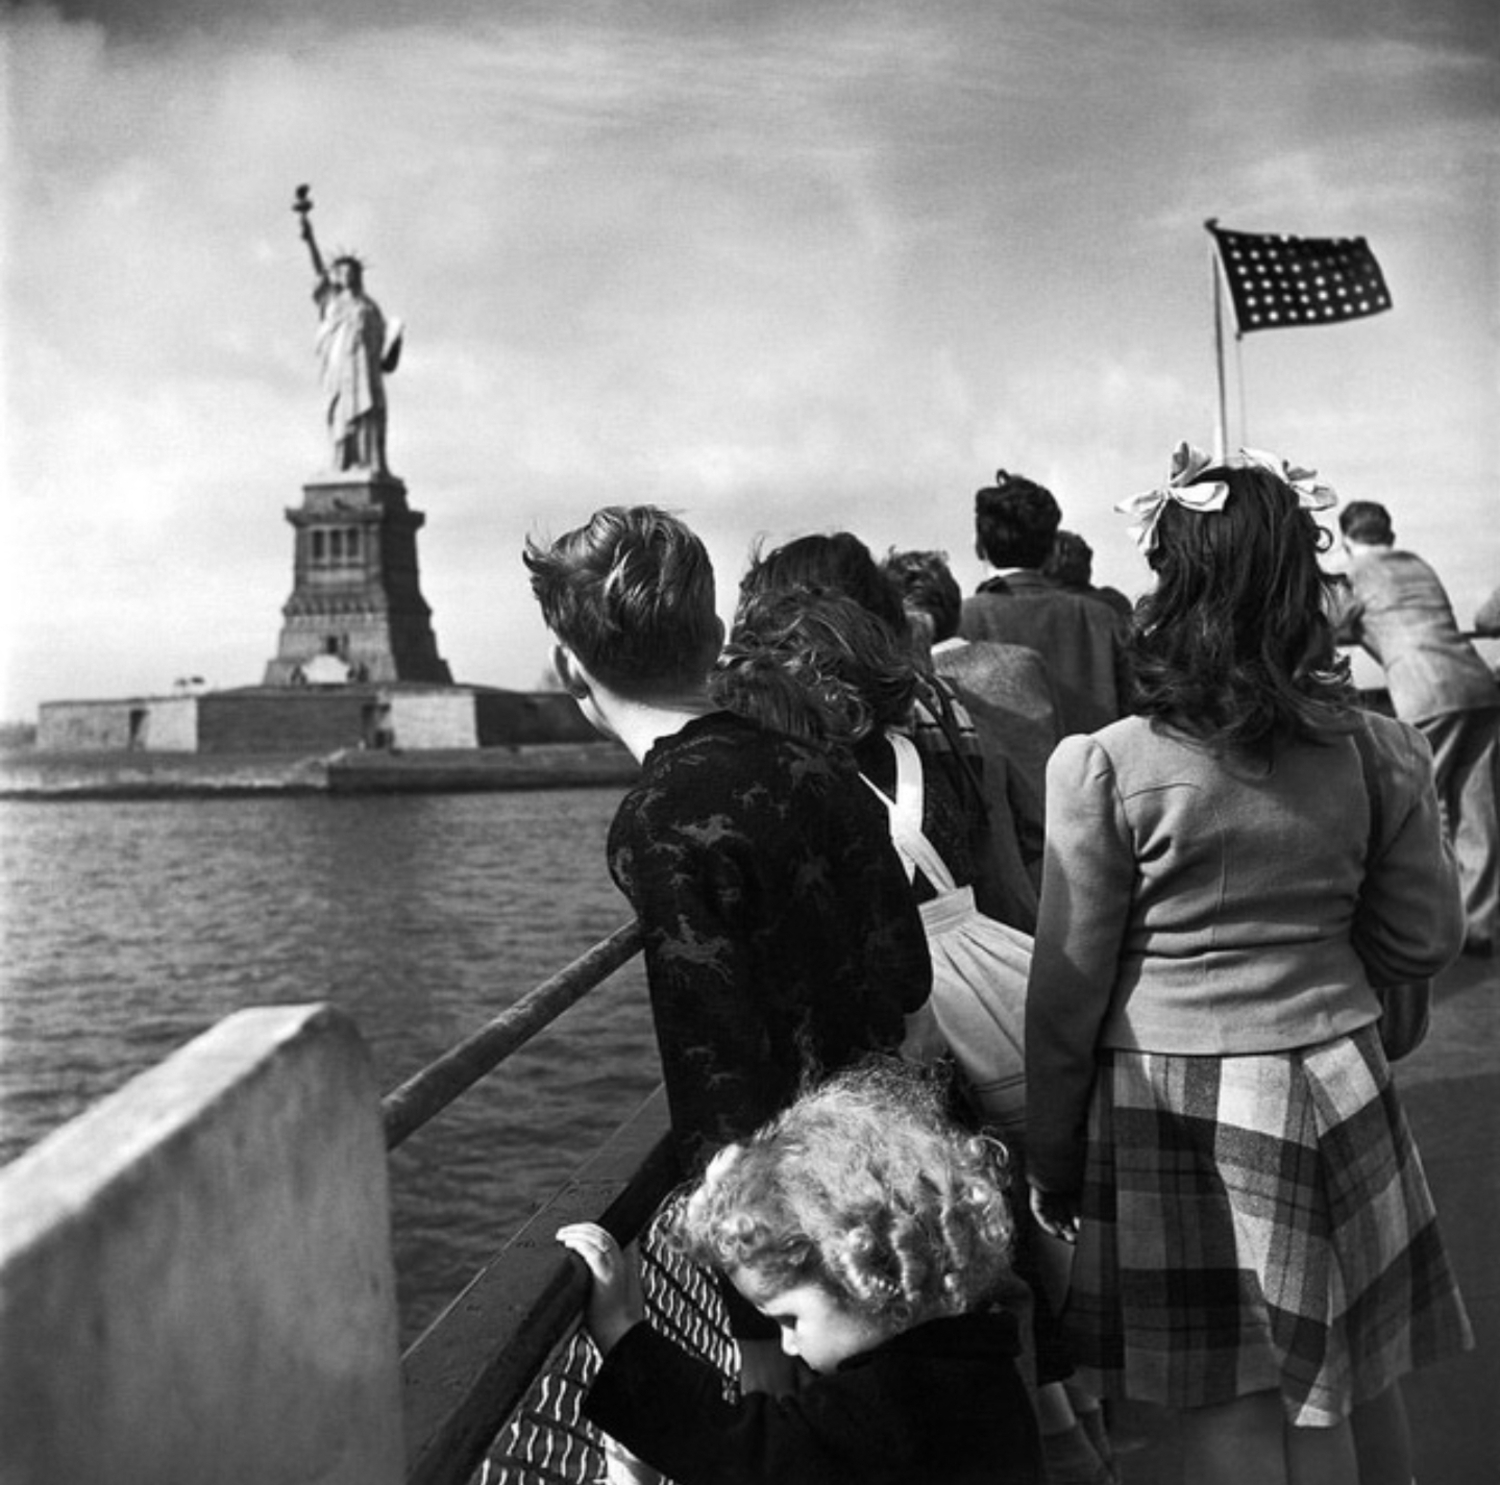 Vintage Photograph Shows Wwii Refugee Children Viewing